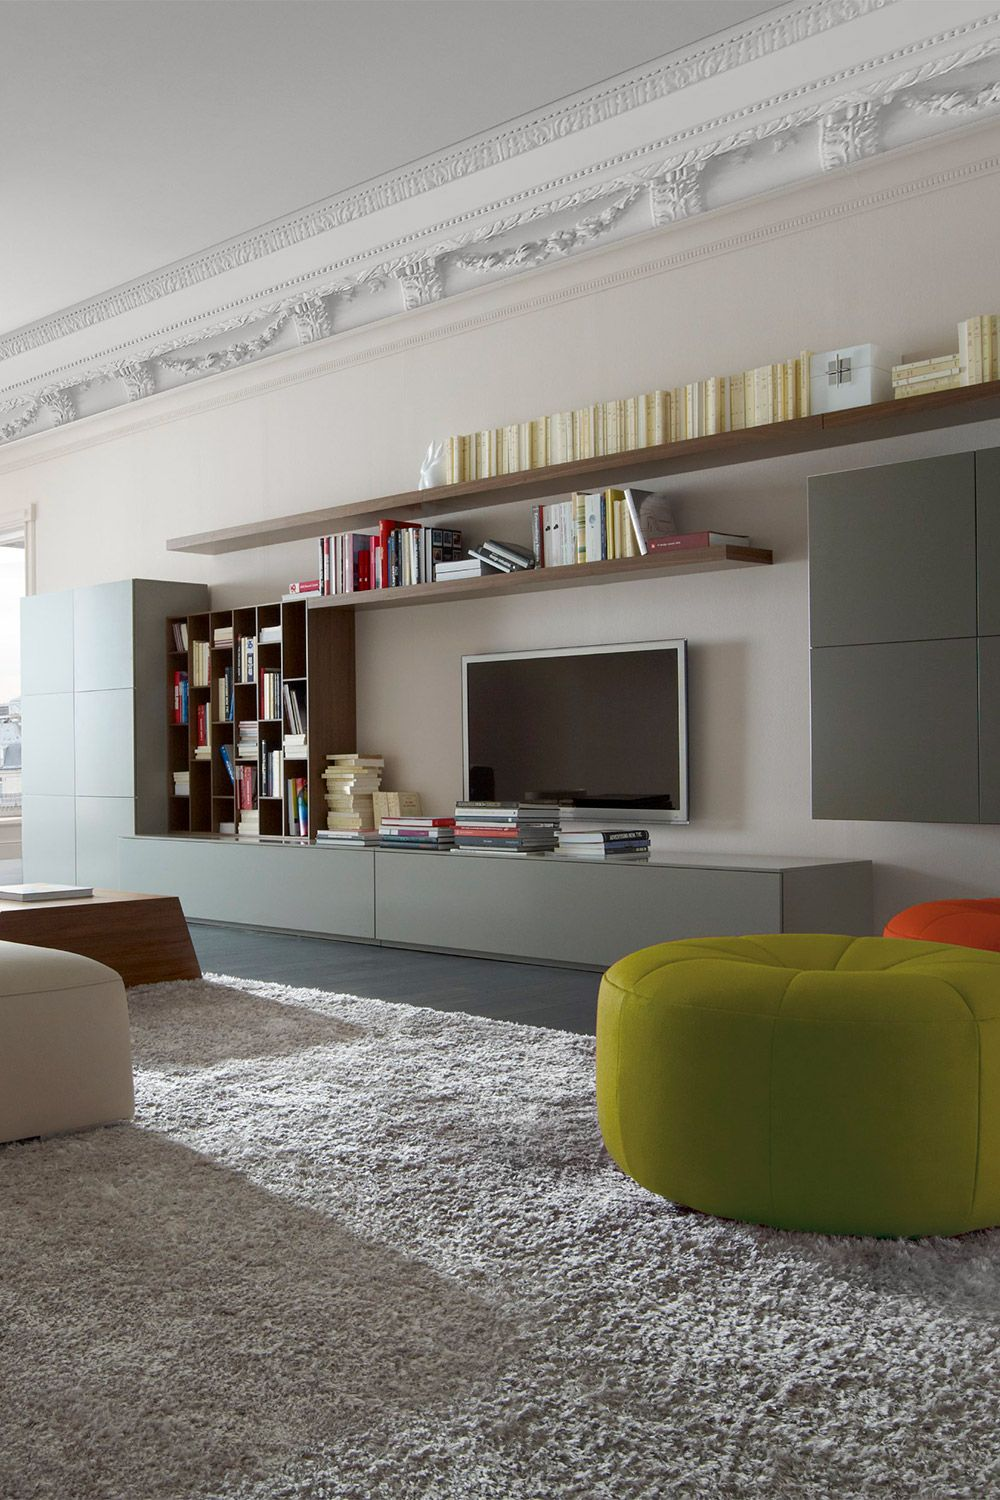 Book Look Wall System Designed By Pagnon Pelhaître For Ligne Roset Available At Linea Inc Modern Furniture Los Angeles Info